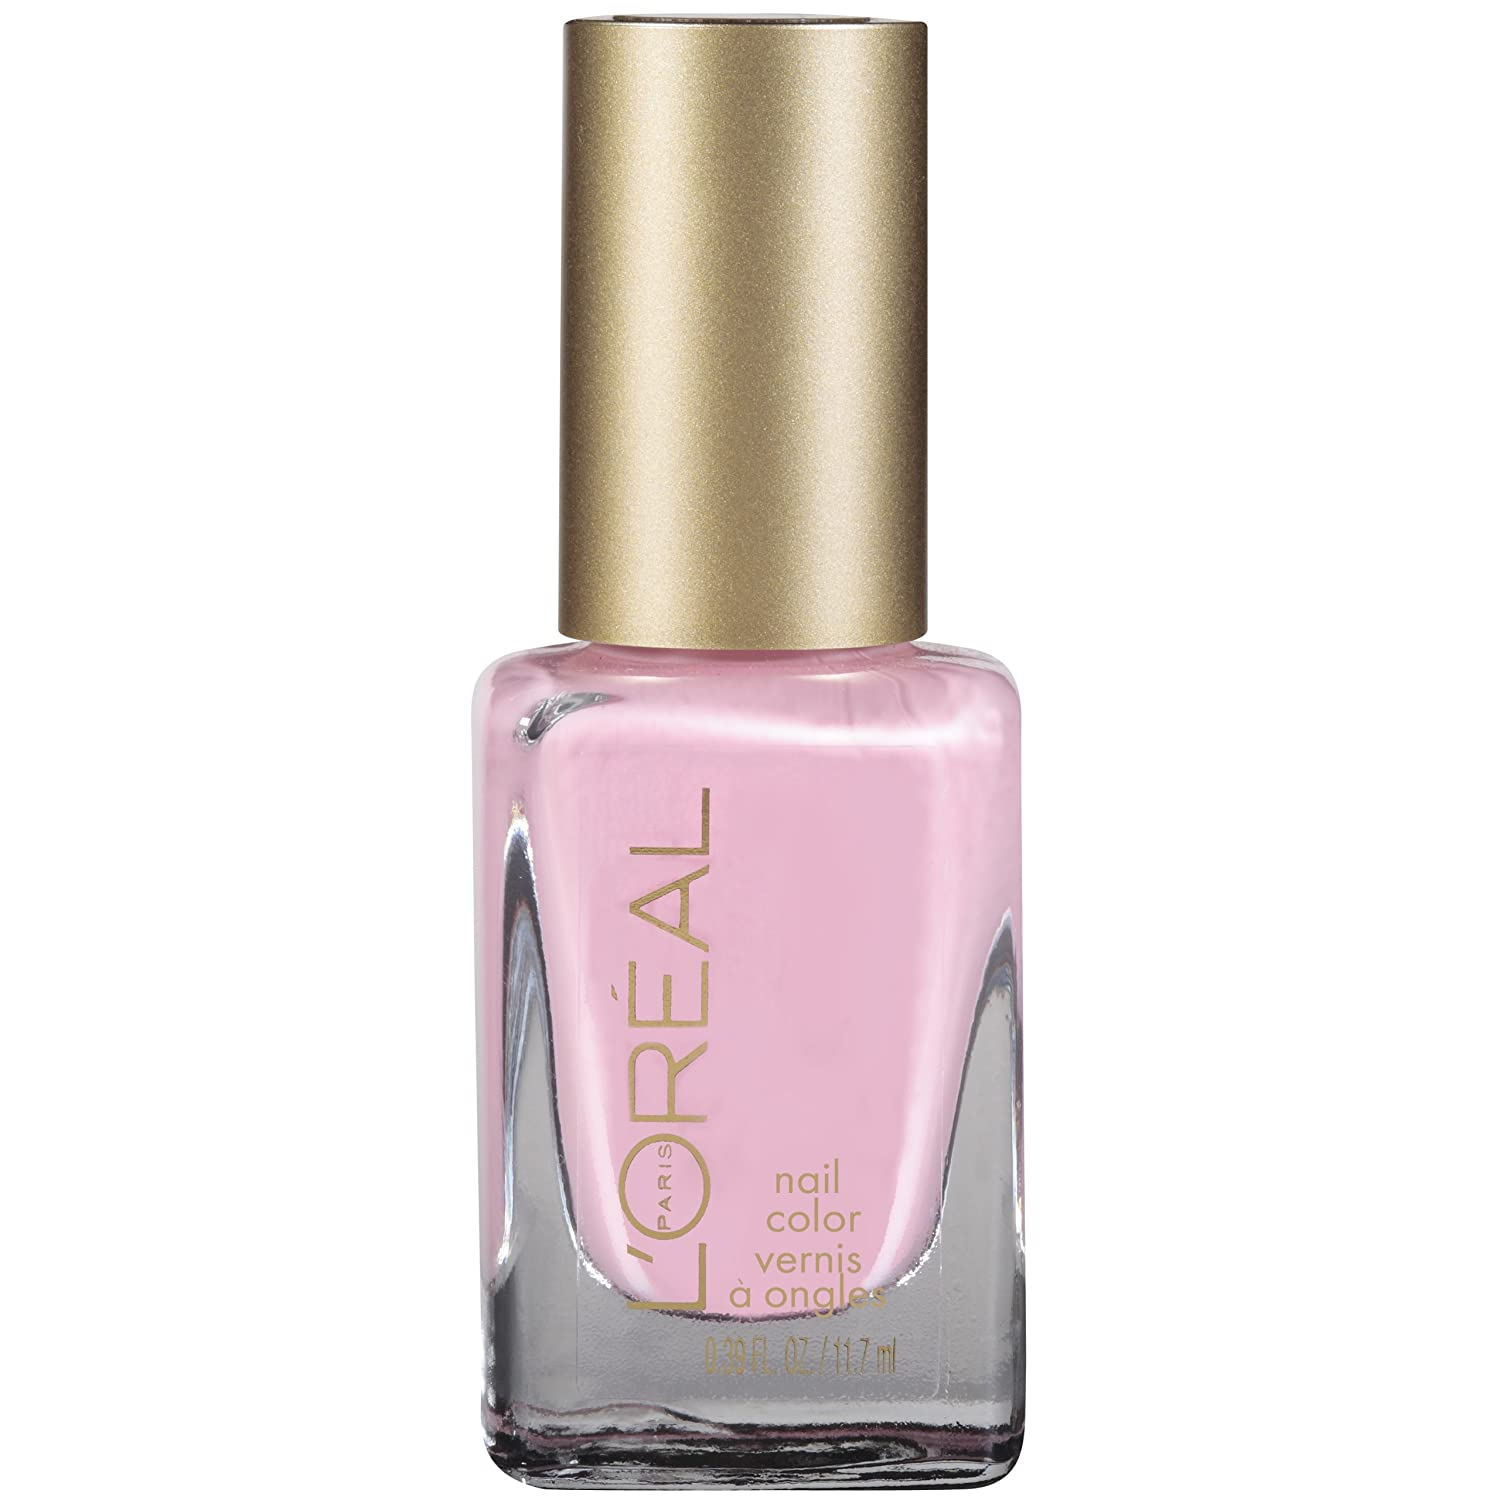 polish nail expressed t be my in but it s awesome essence love monday cut doesn petals notd pink tonight just for mani polishes one this ve light previously gel me i